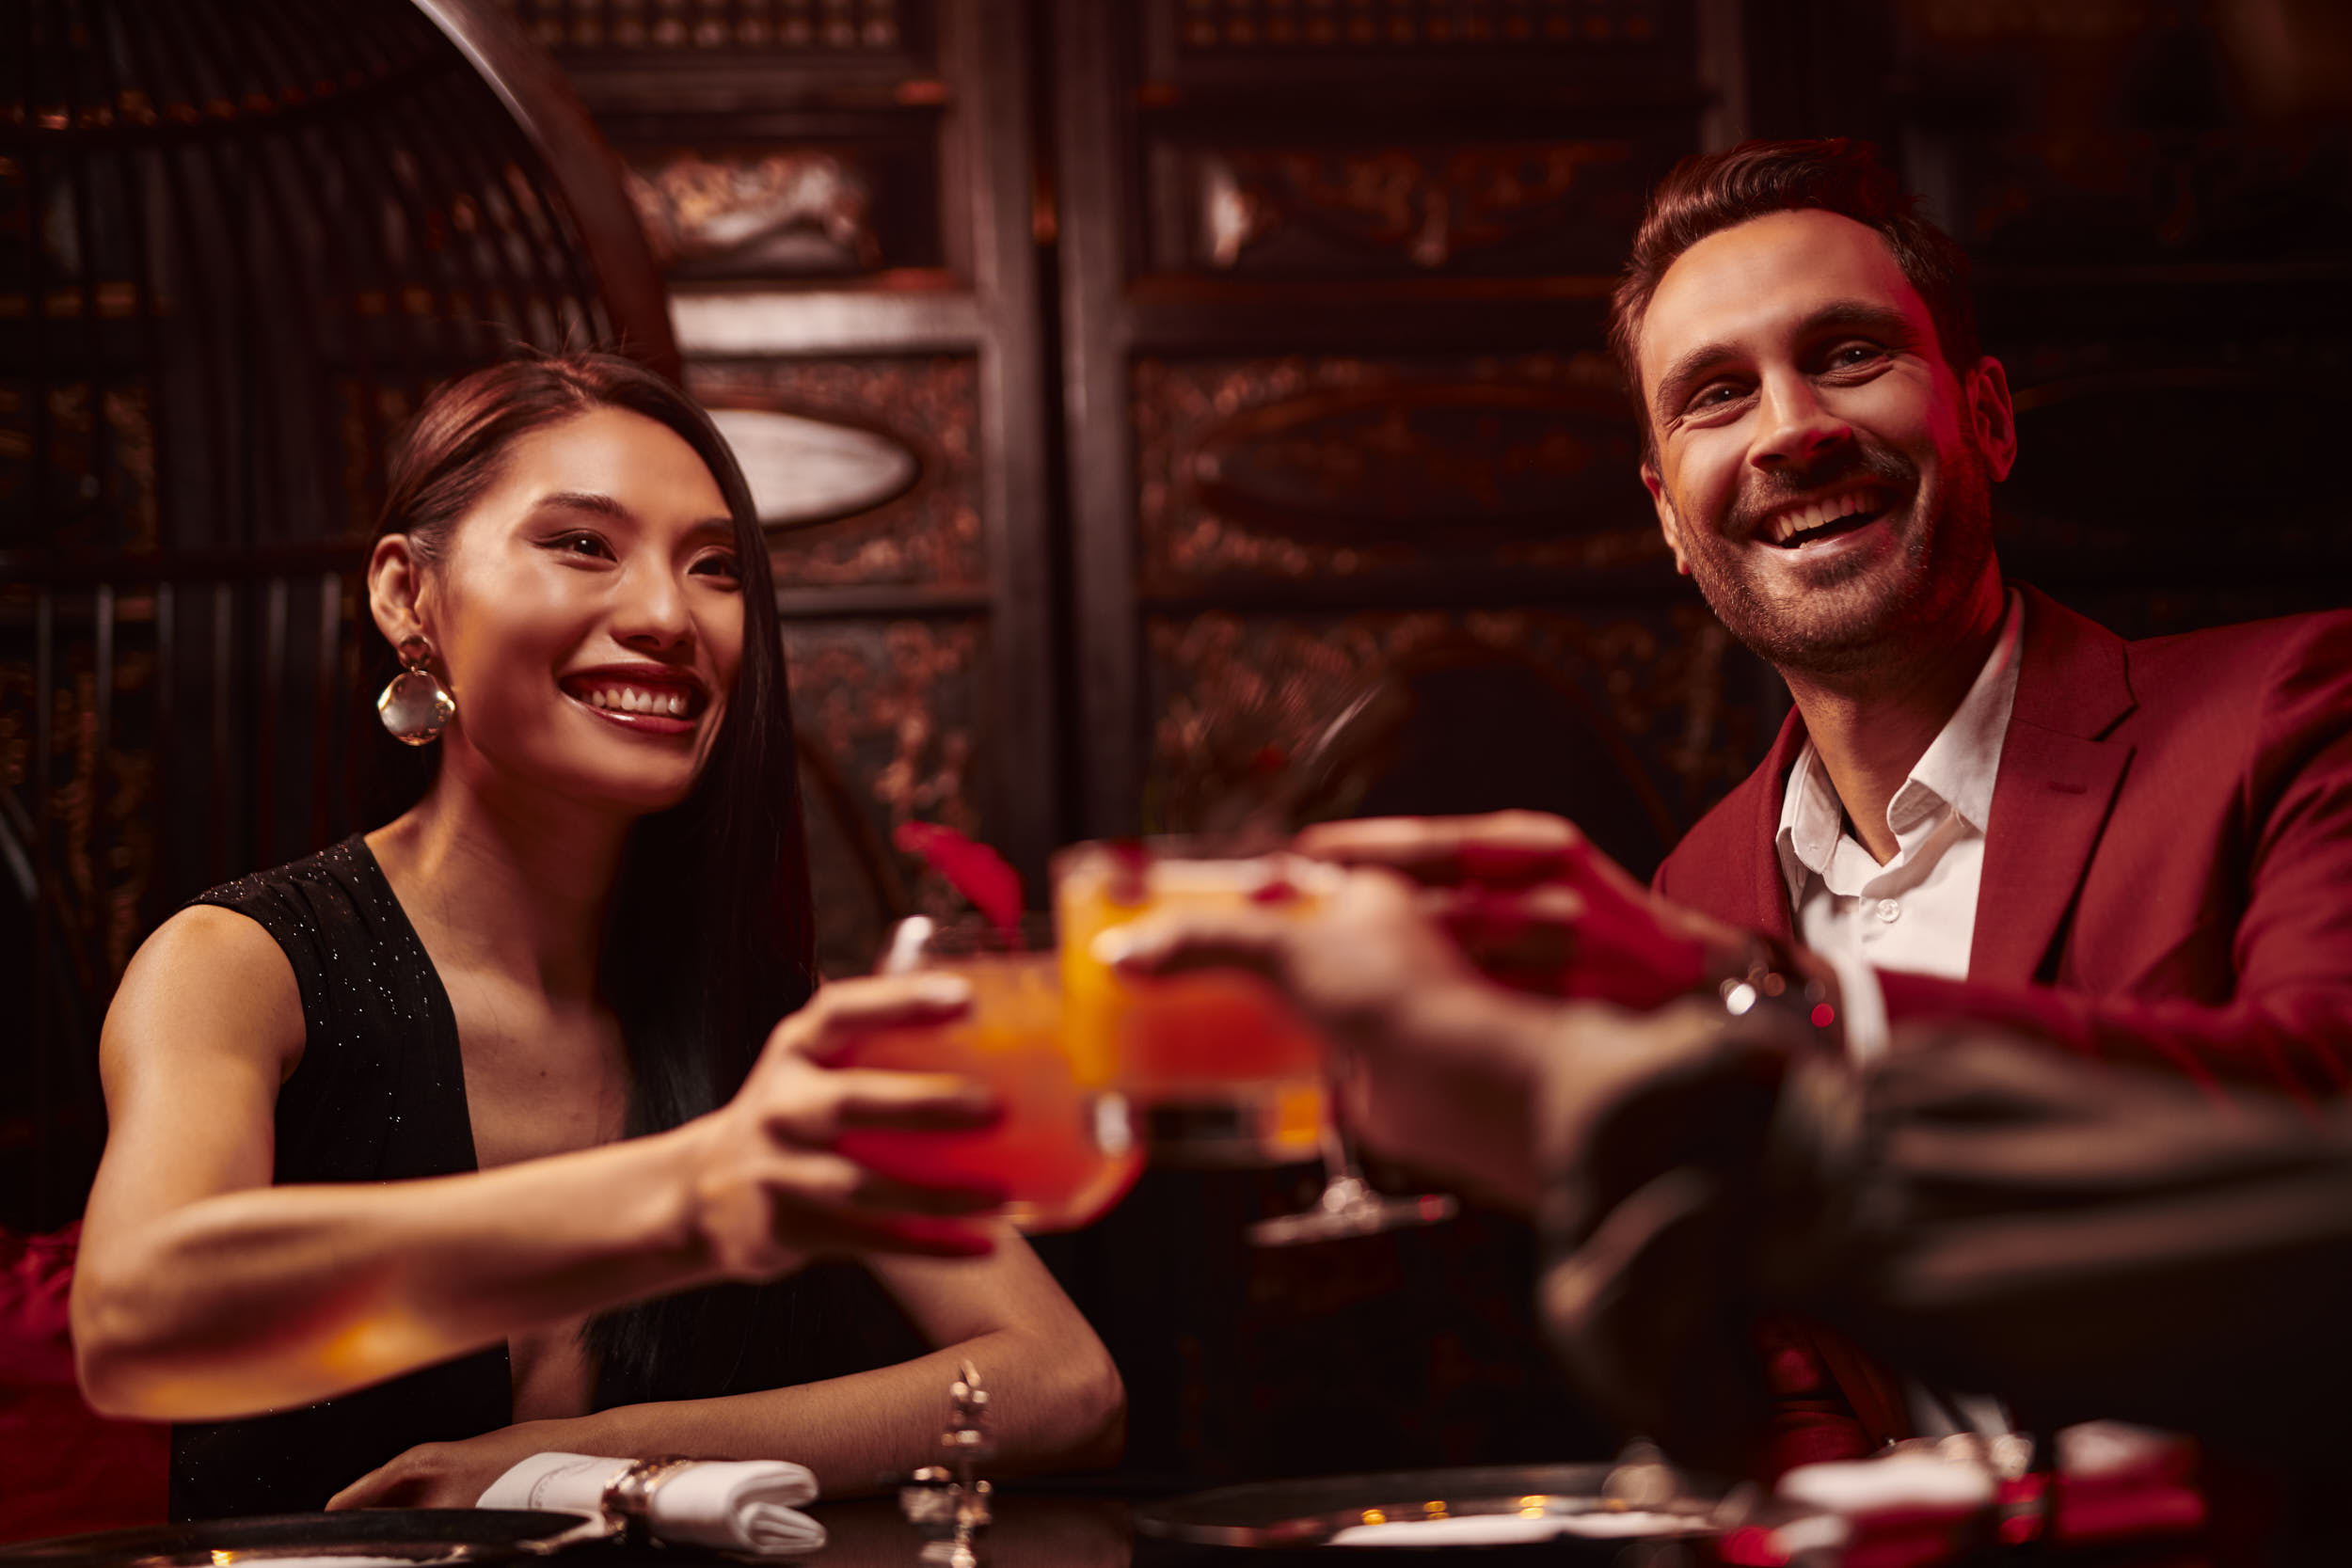 luxury hotel  photographer matthew lloyd shoots peninsula paris for their alcohol drinks and food advertising photography